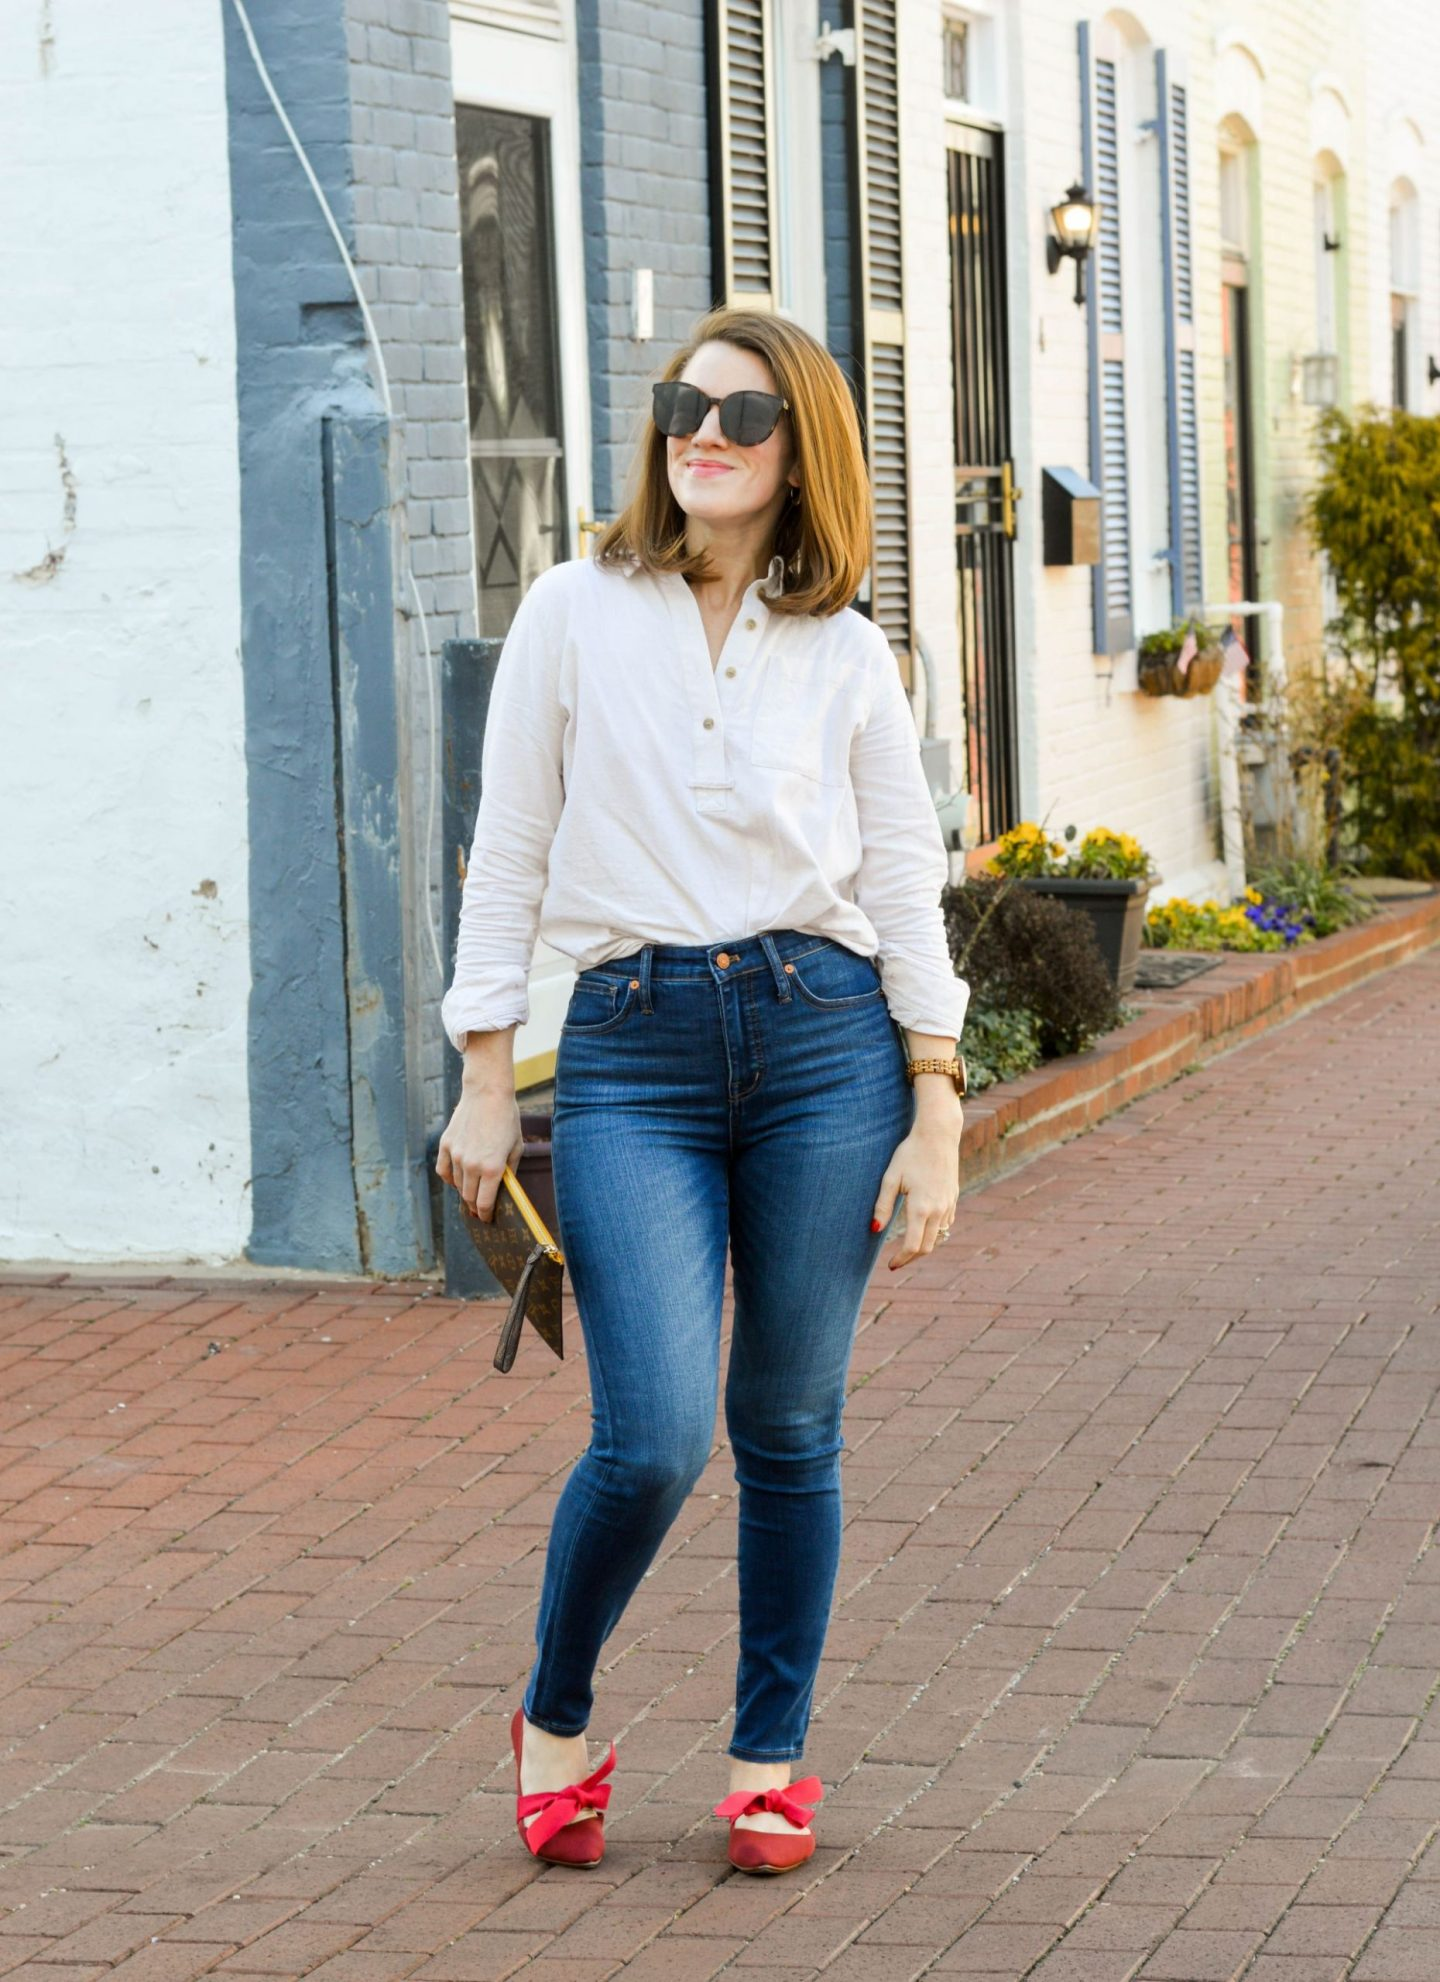 finding the right fit jeans - madewell jeans worth it - madewell curvy high-rise jeans - madewell tencel jeans